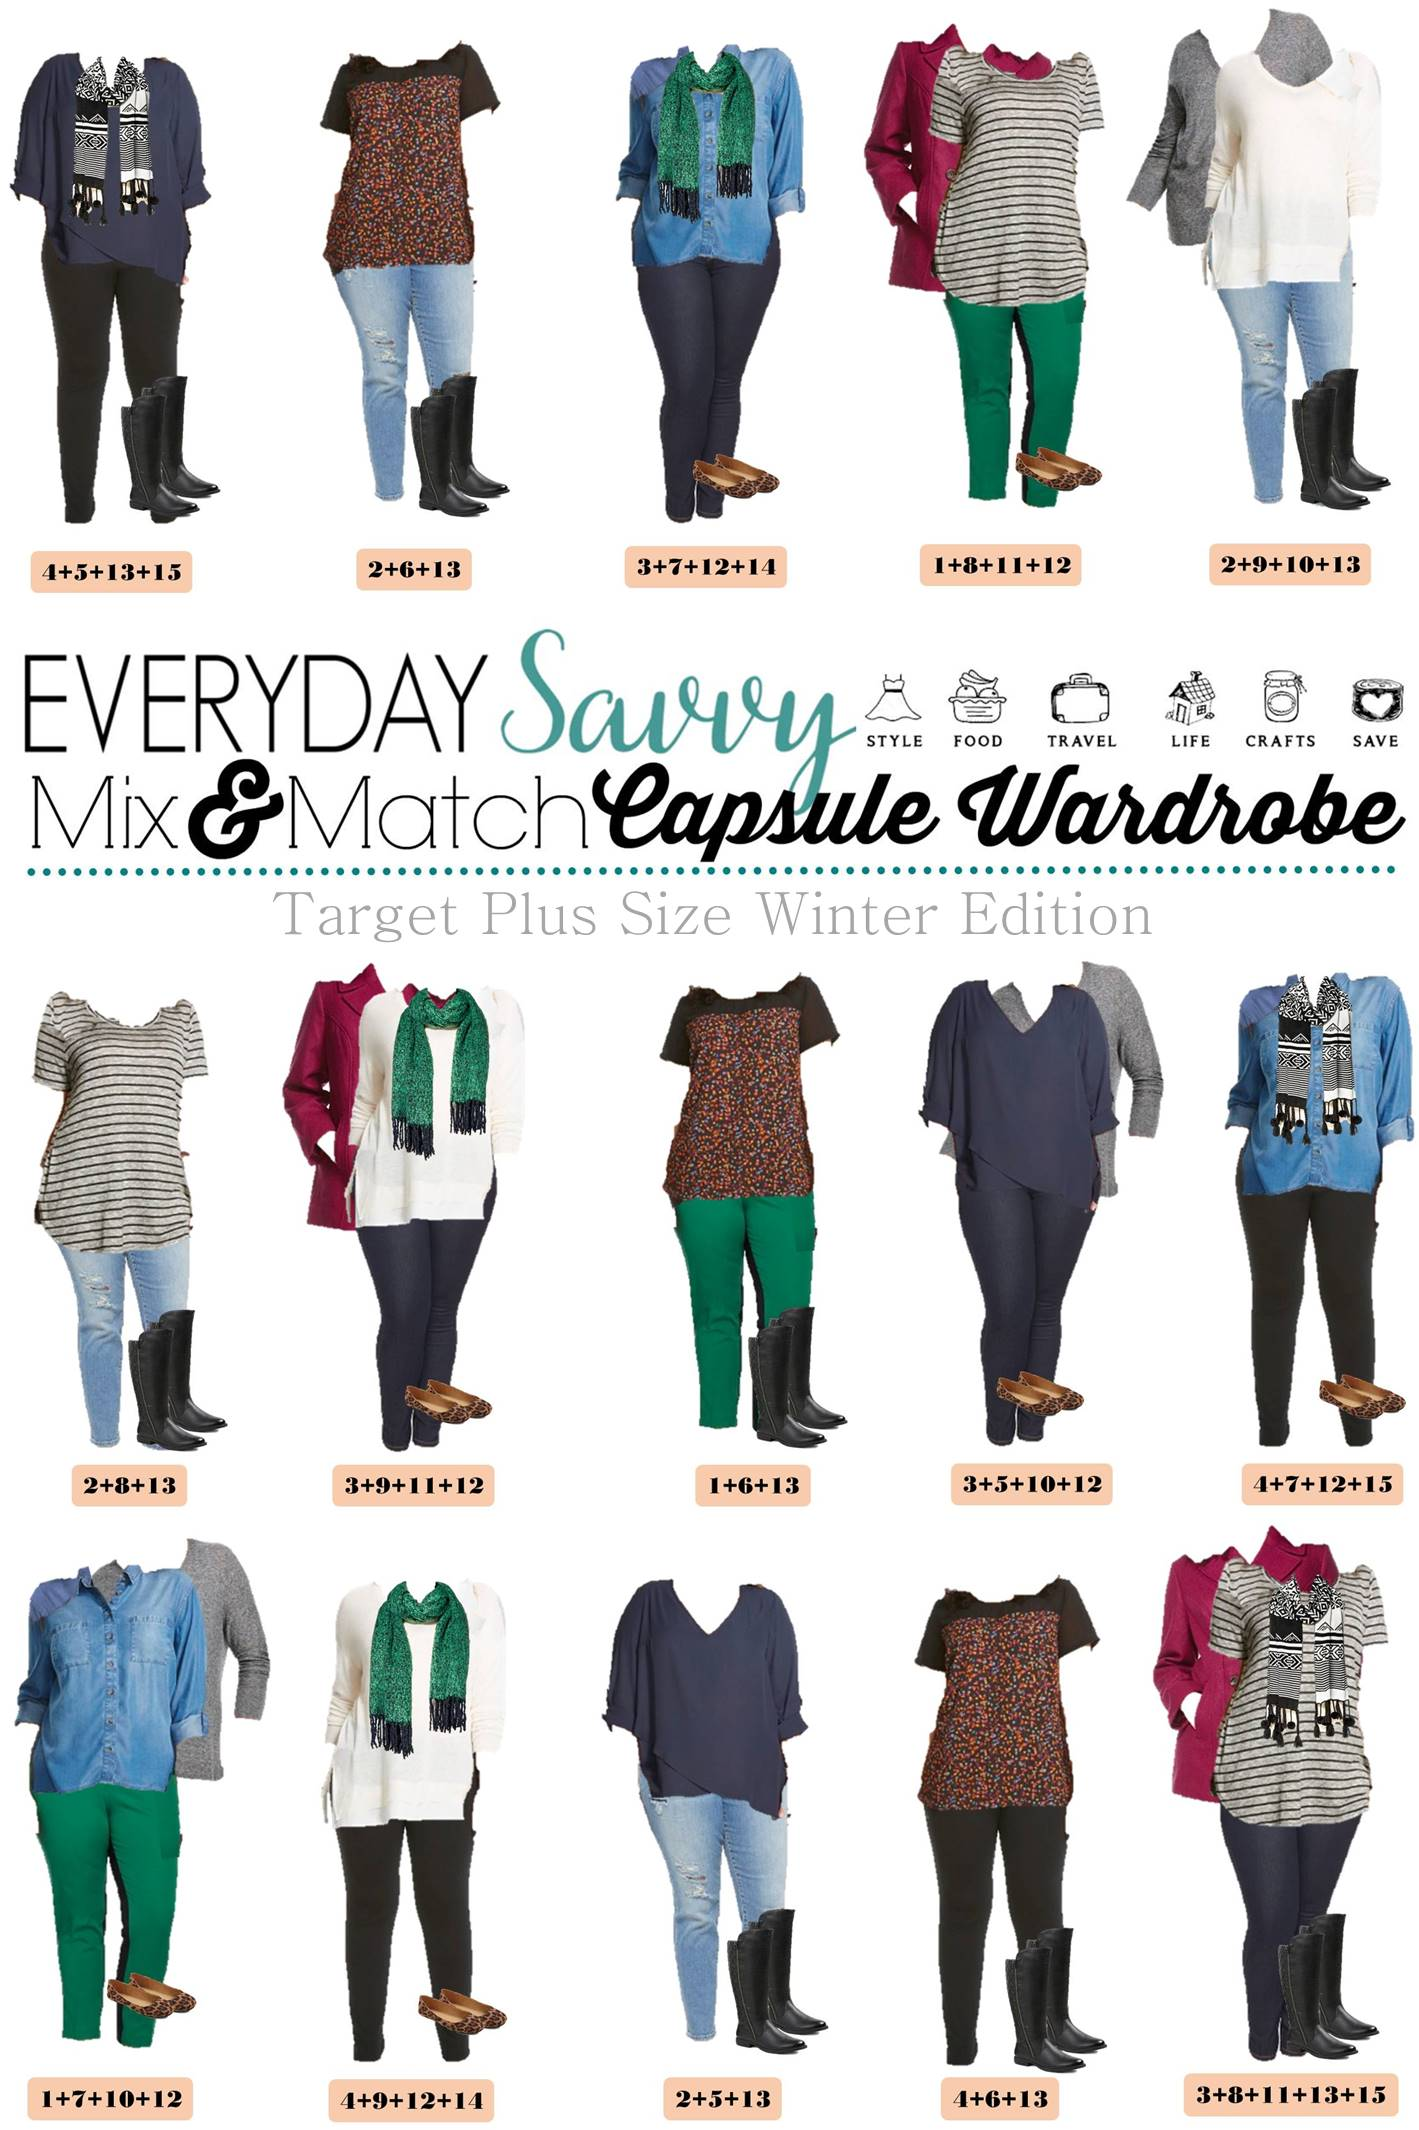 Winter Plus Size Capsule Wardrobe From Target